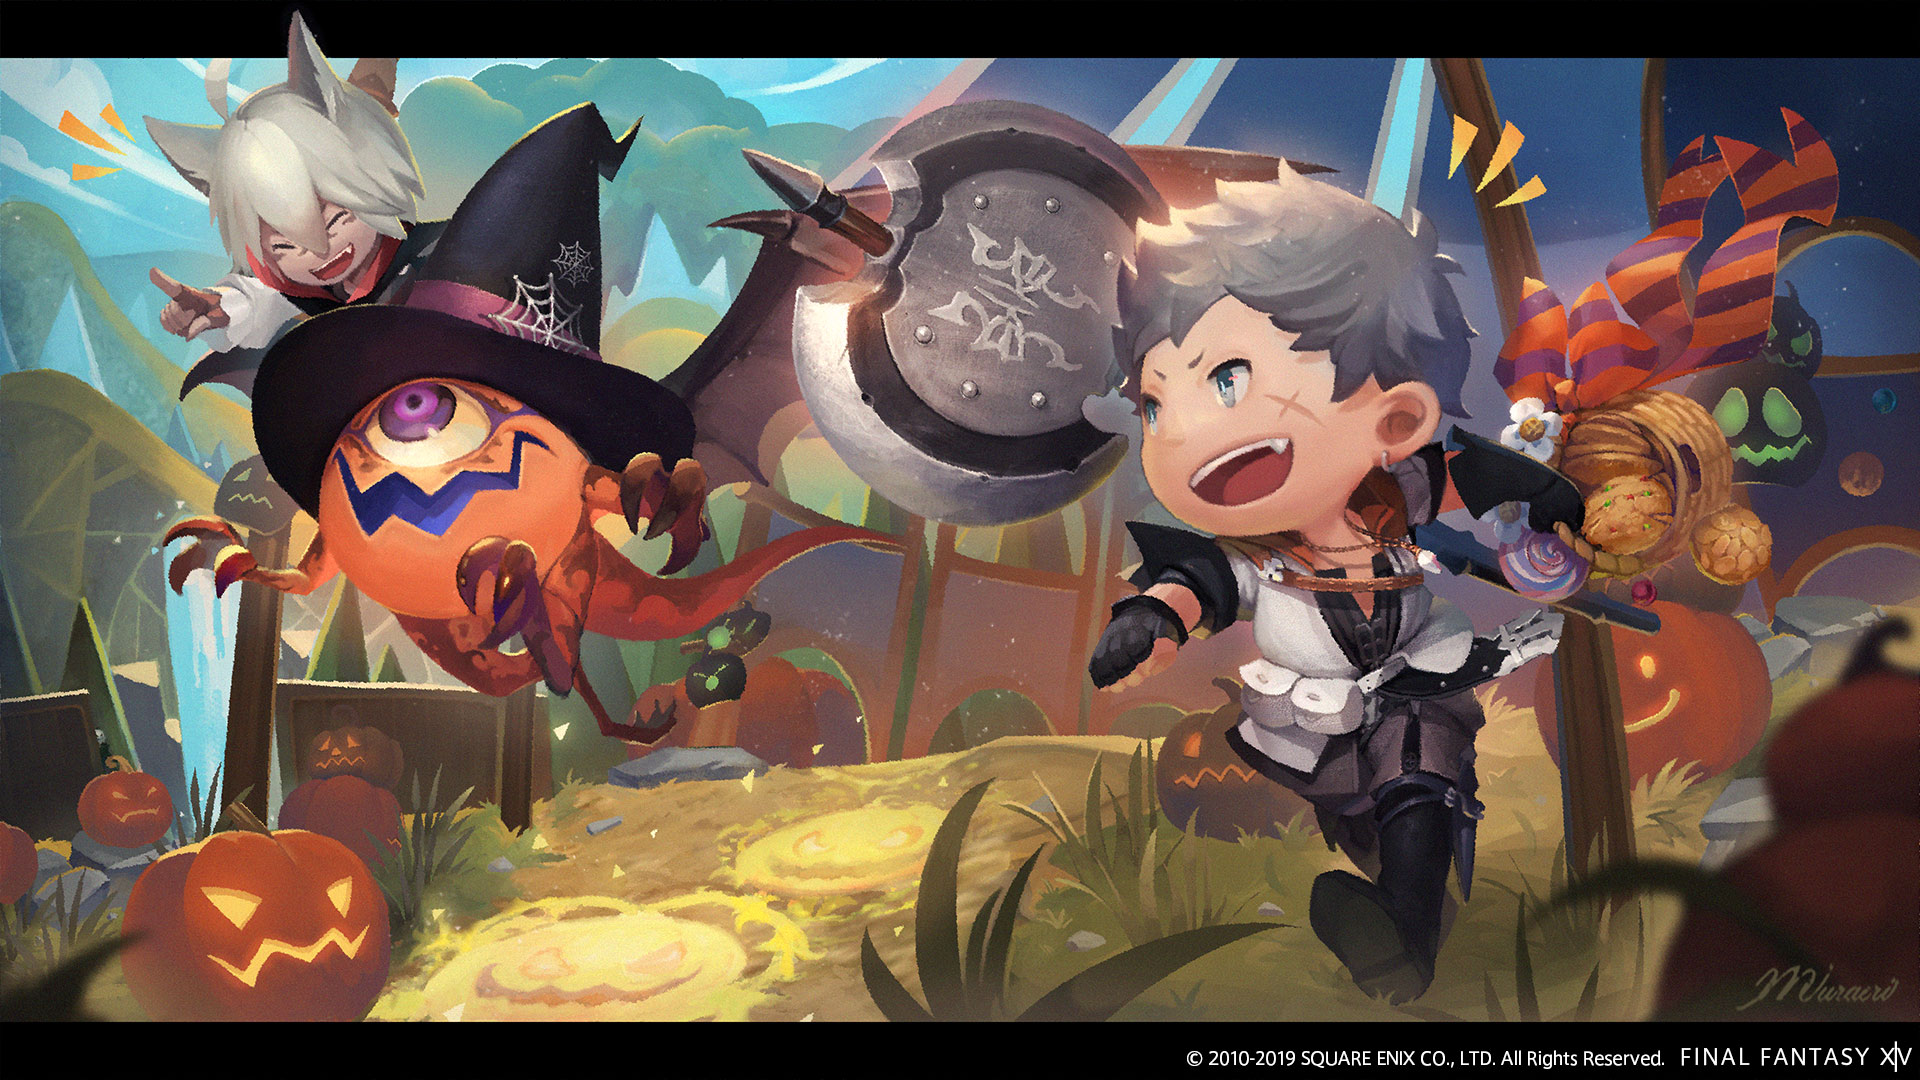 Halloween Ff14 2020 Final Fantasy XIV Halloween Event To Start October 17